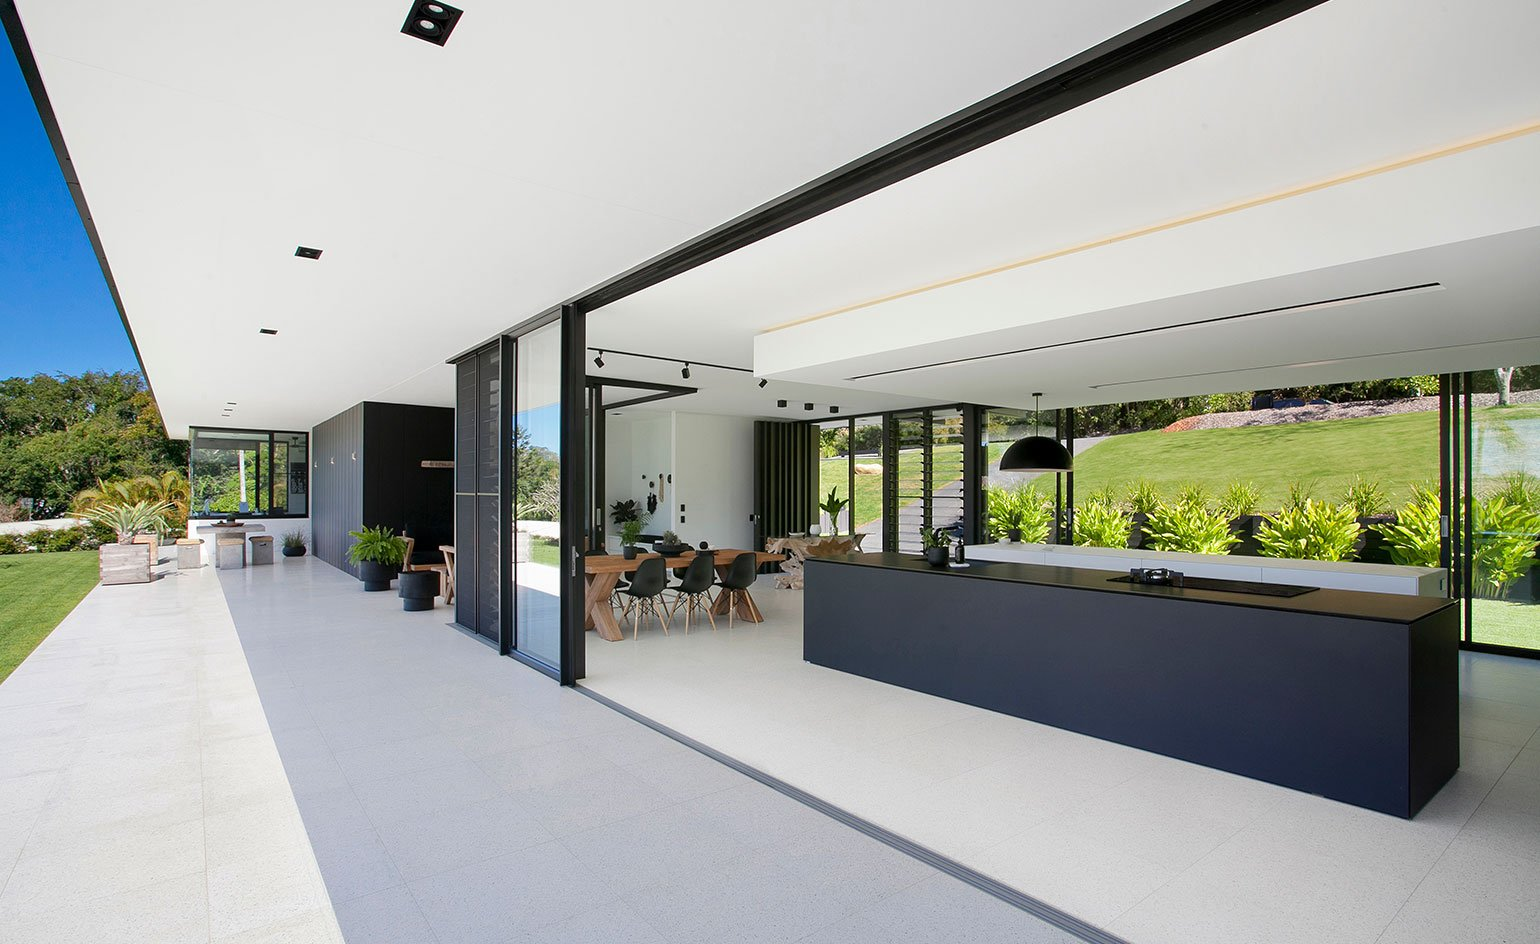 Contemporary house - architect Sarah Waller's Doonan Glass House - kitchen view from outside